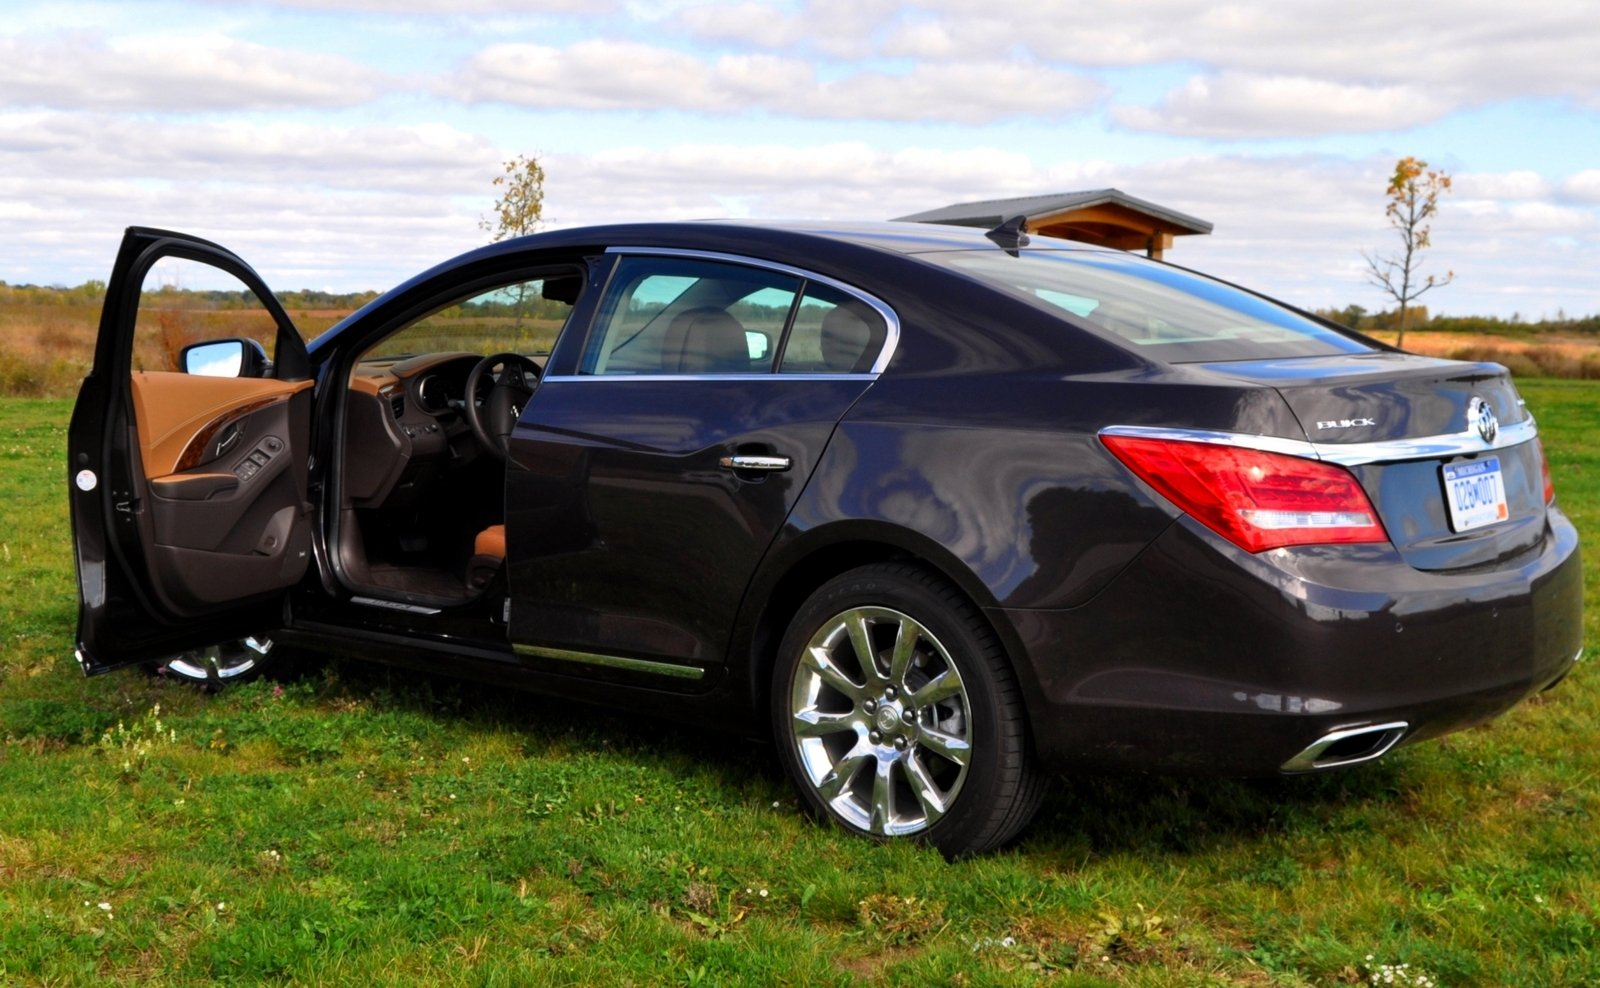 2014 buick lacrosse driven picture 528781 car review top speed. Cars Review. Best American Auto & Cars Review